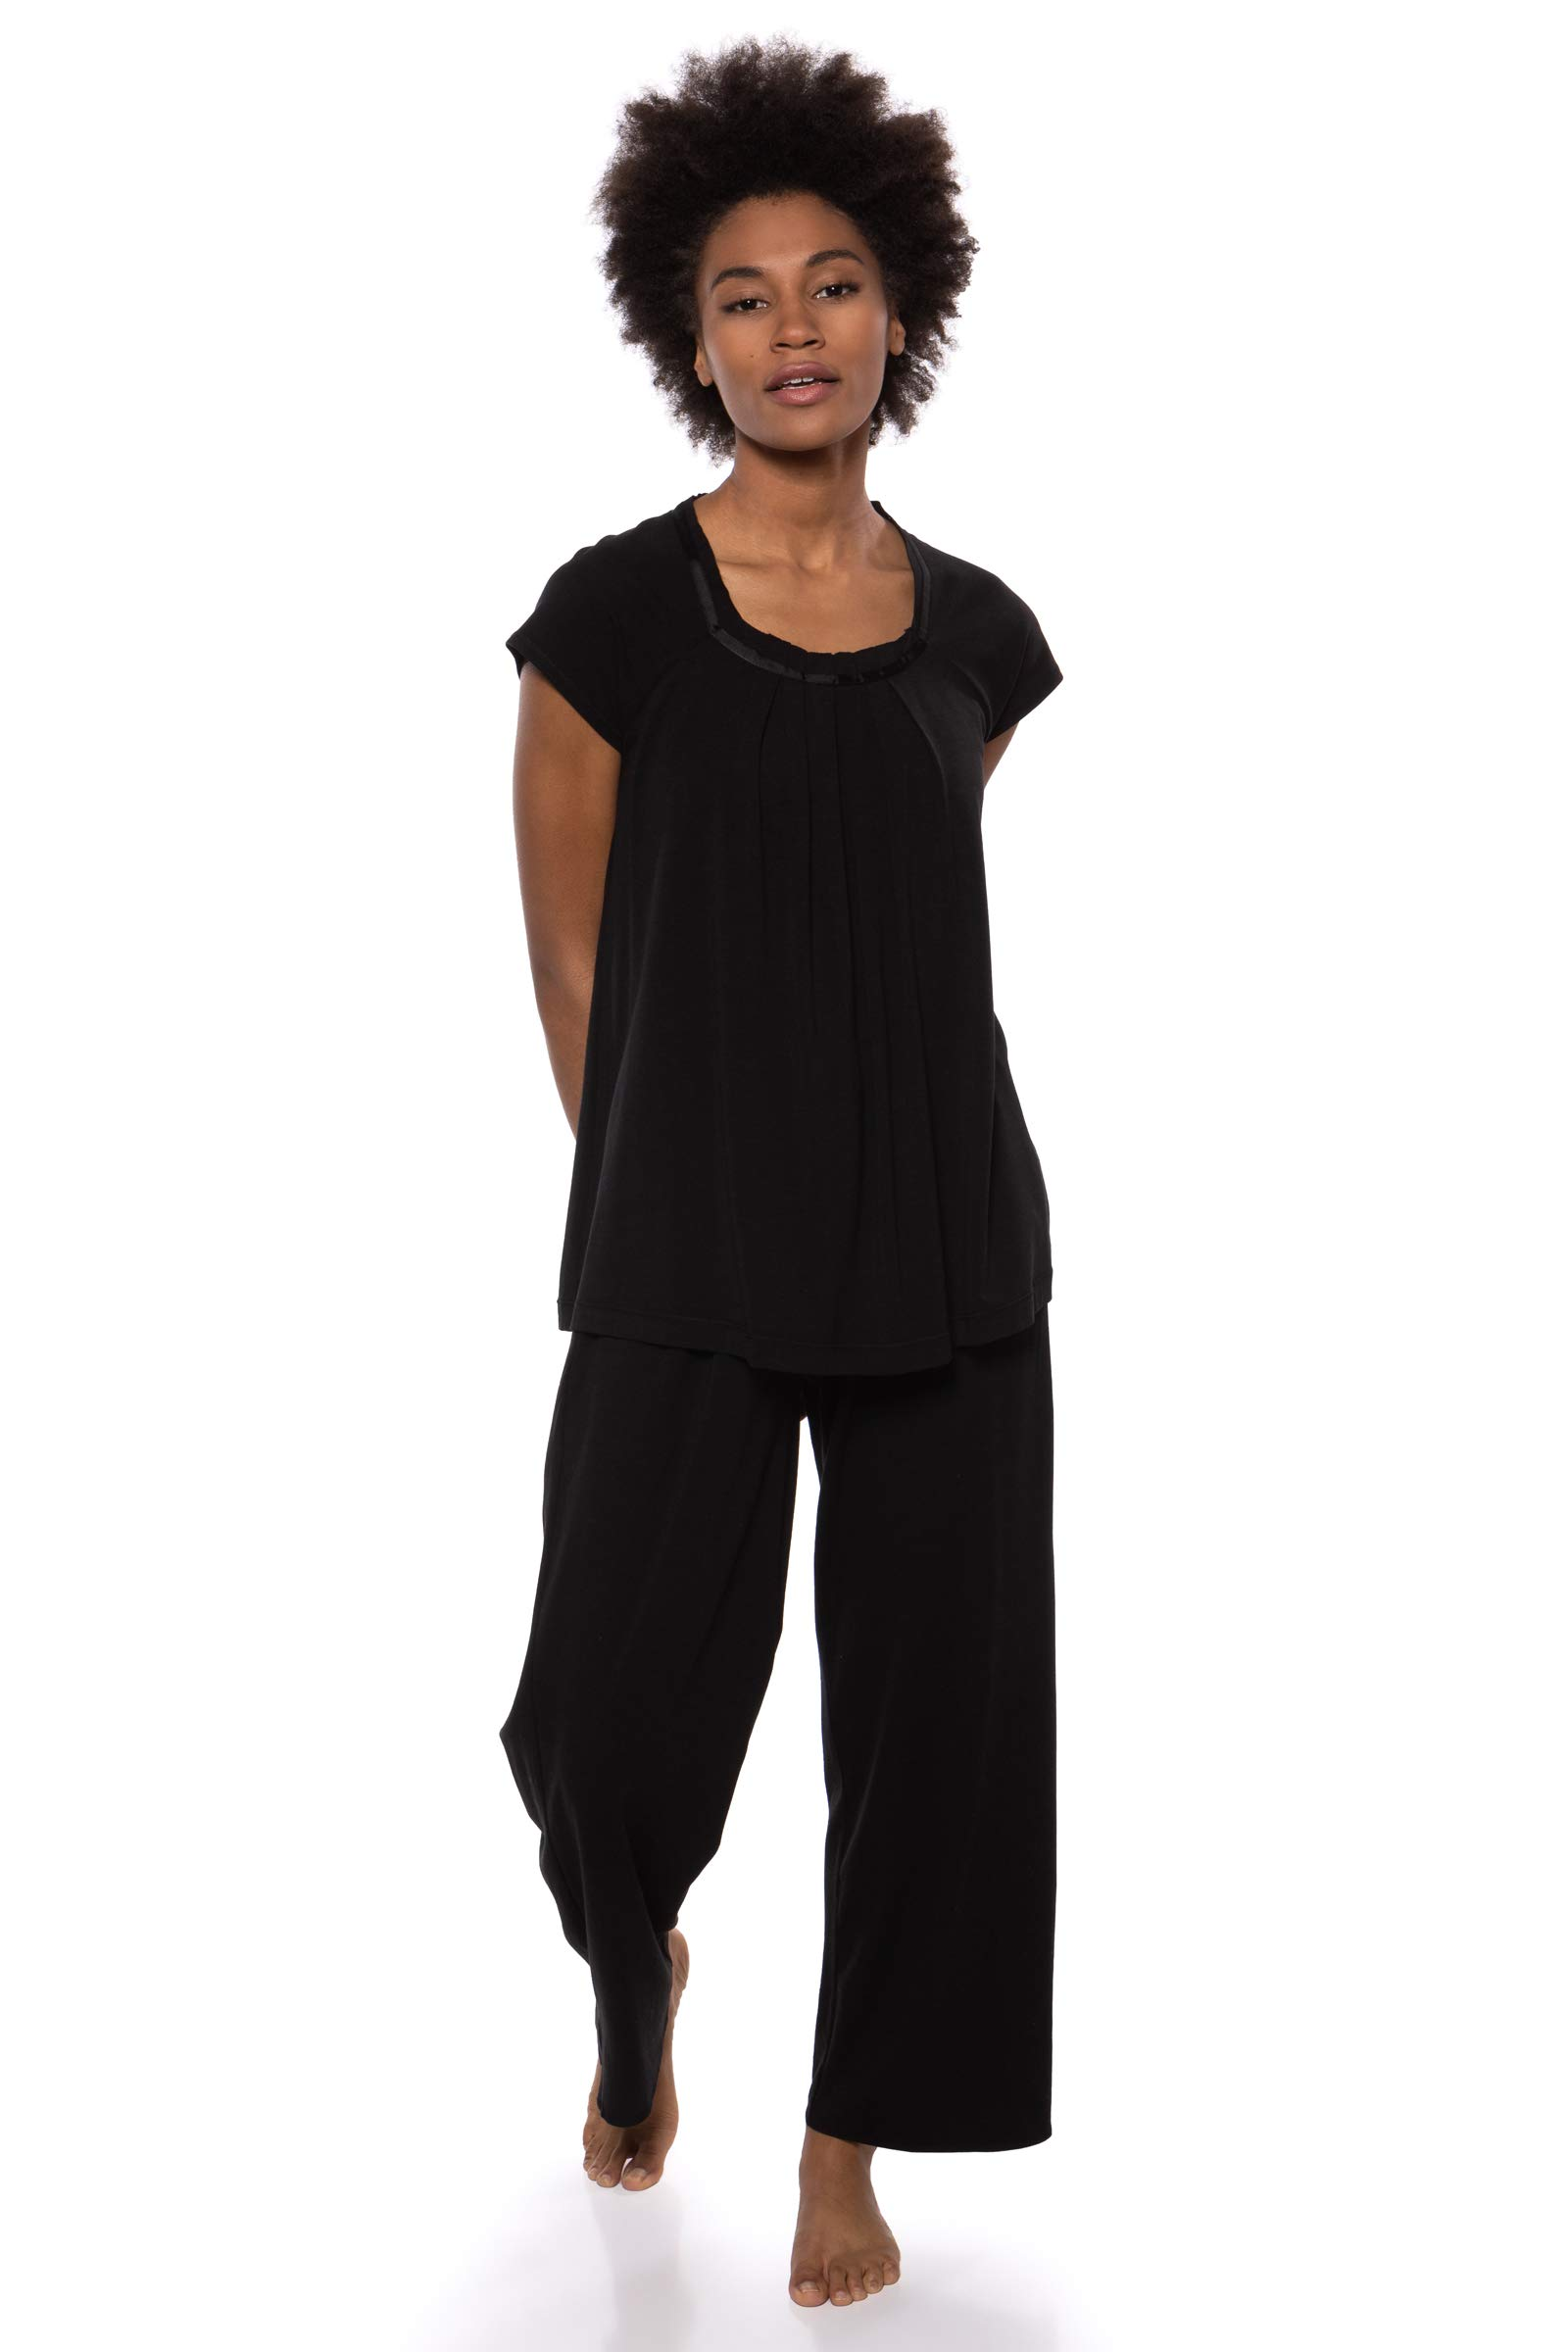 Texere Women's Pajamas in Bamboo Viscose (Bamboo Bliss, Black, 2X) Valentines Gifts for Her by TexereSilk